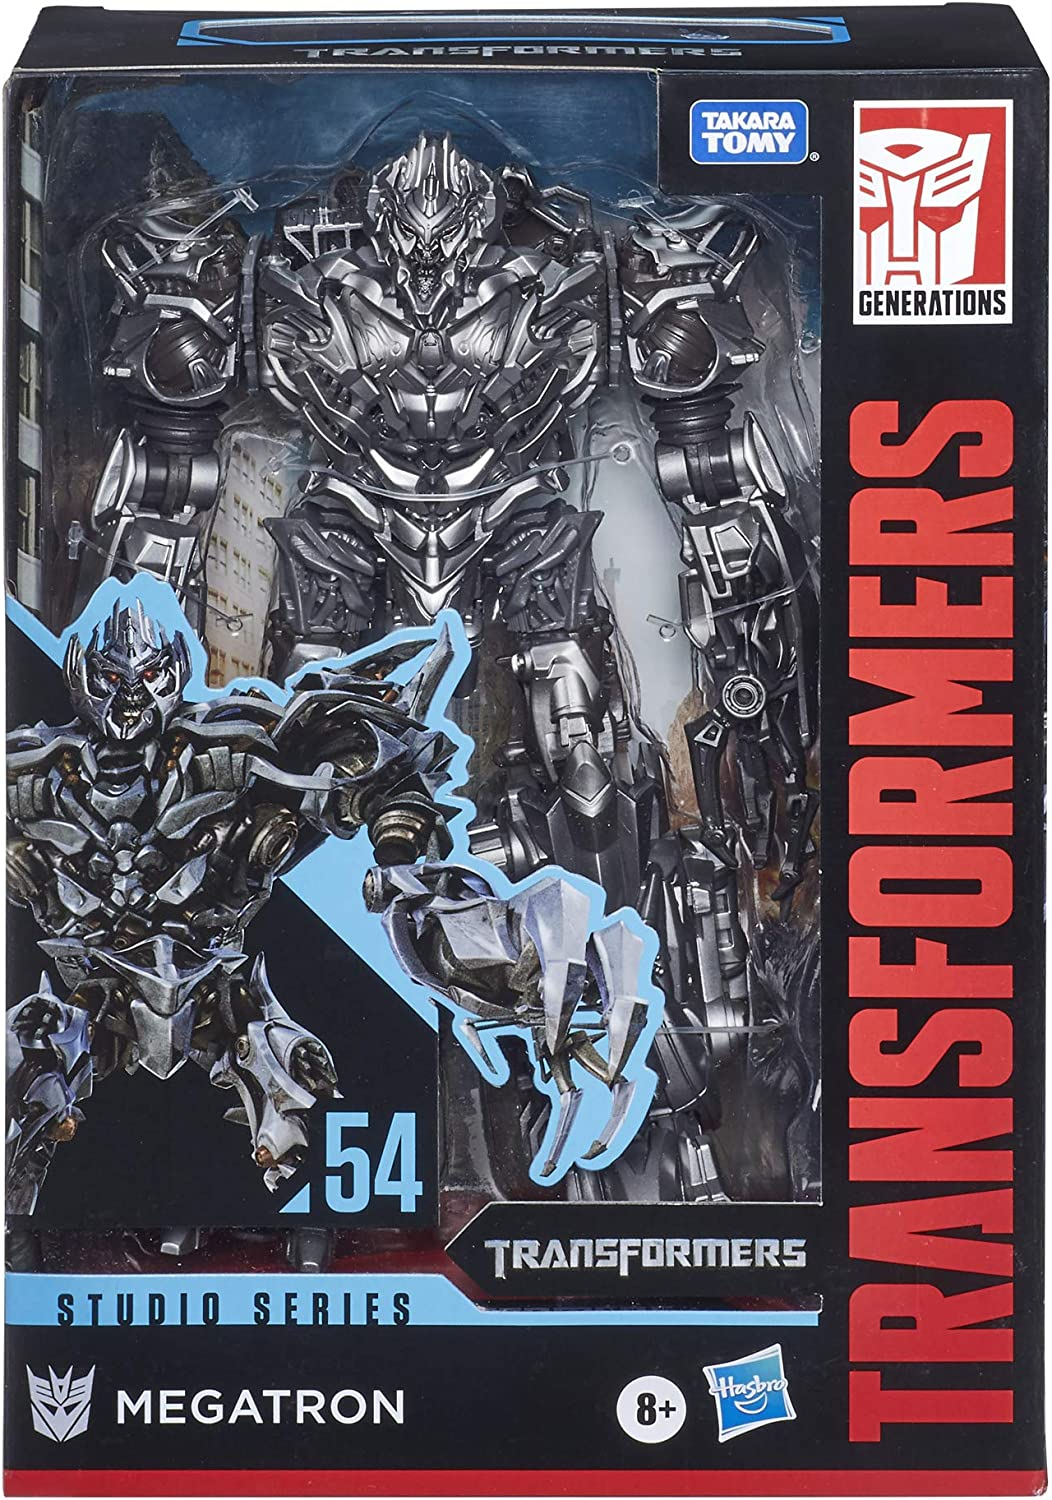 Max 54% OFF Transformers Toys Studio Series Fi High material Class Voyager 54